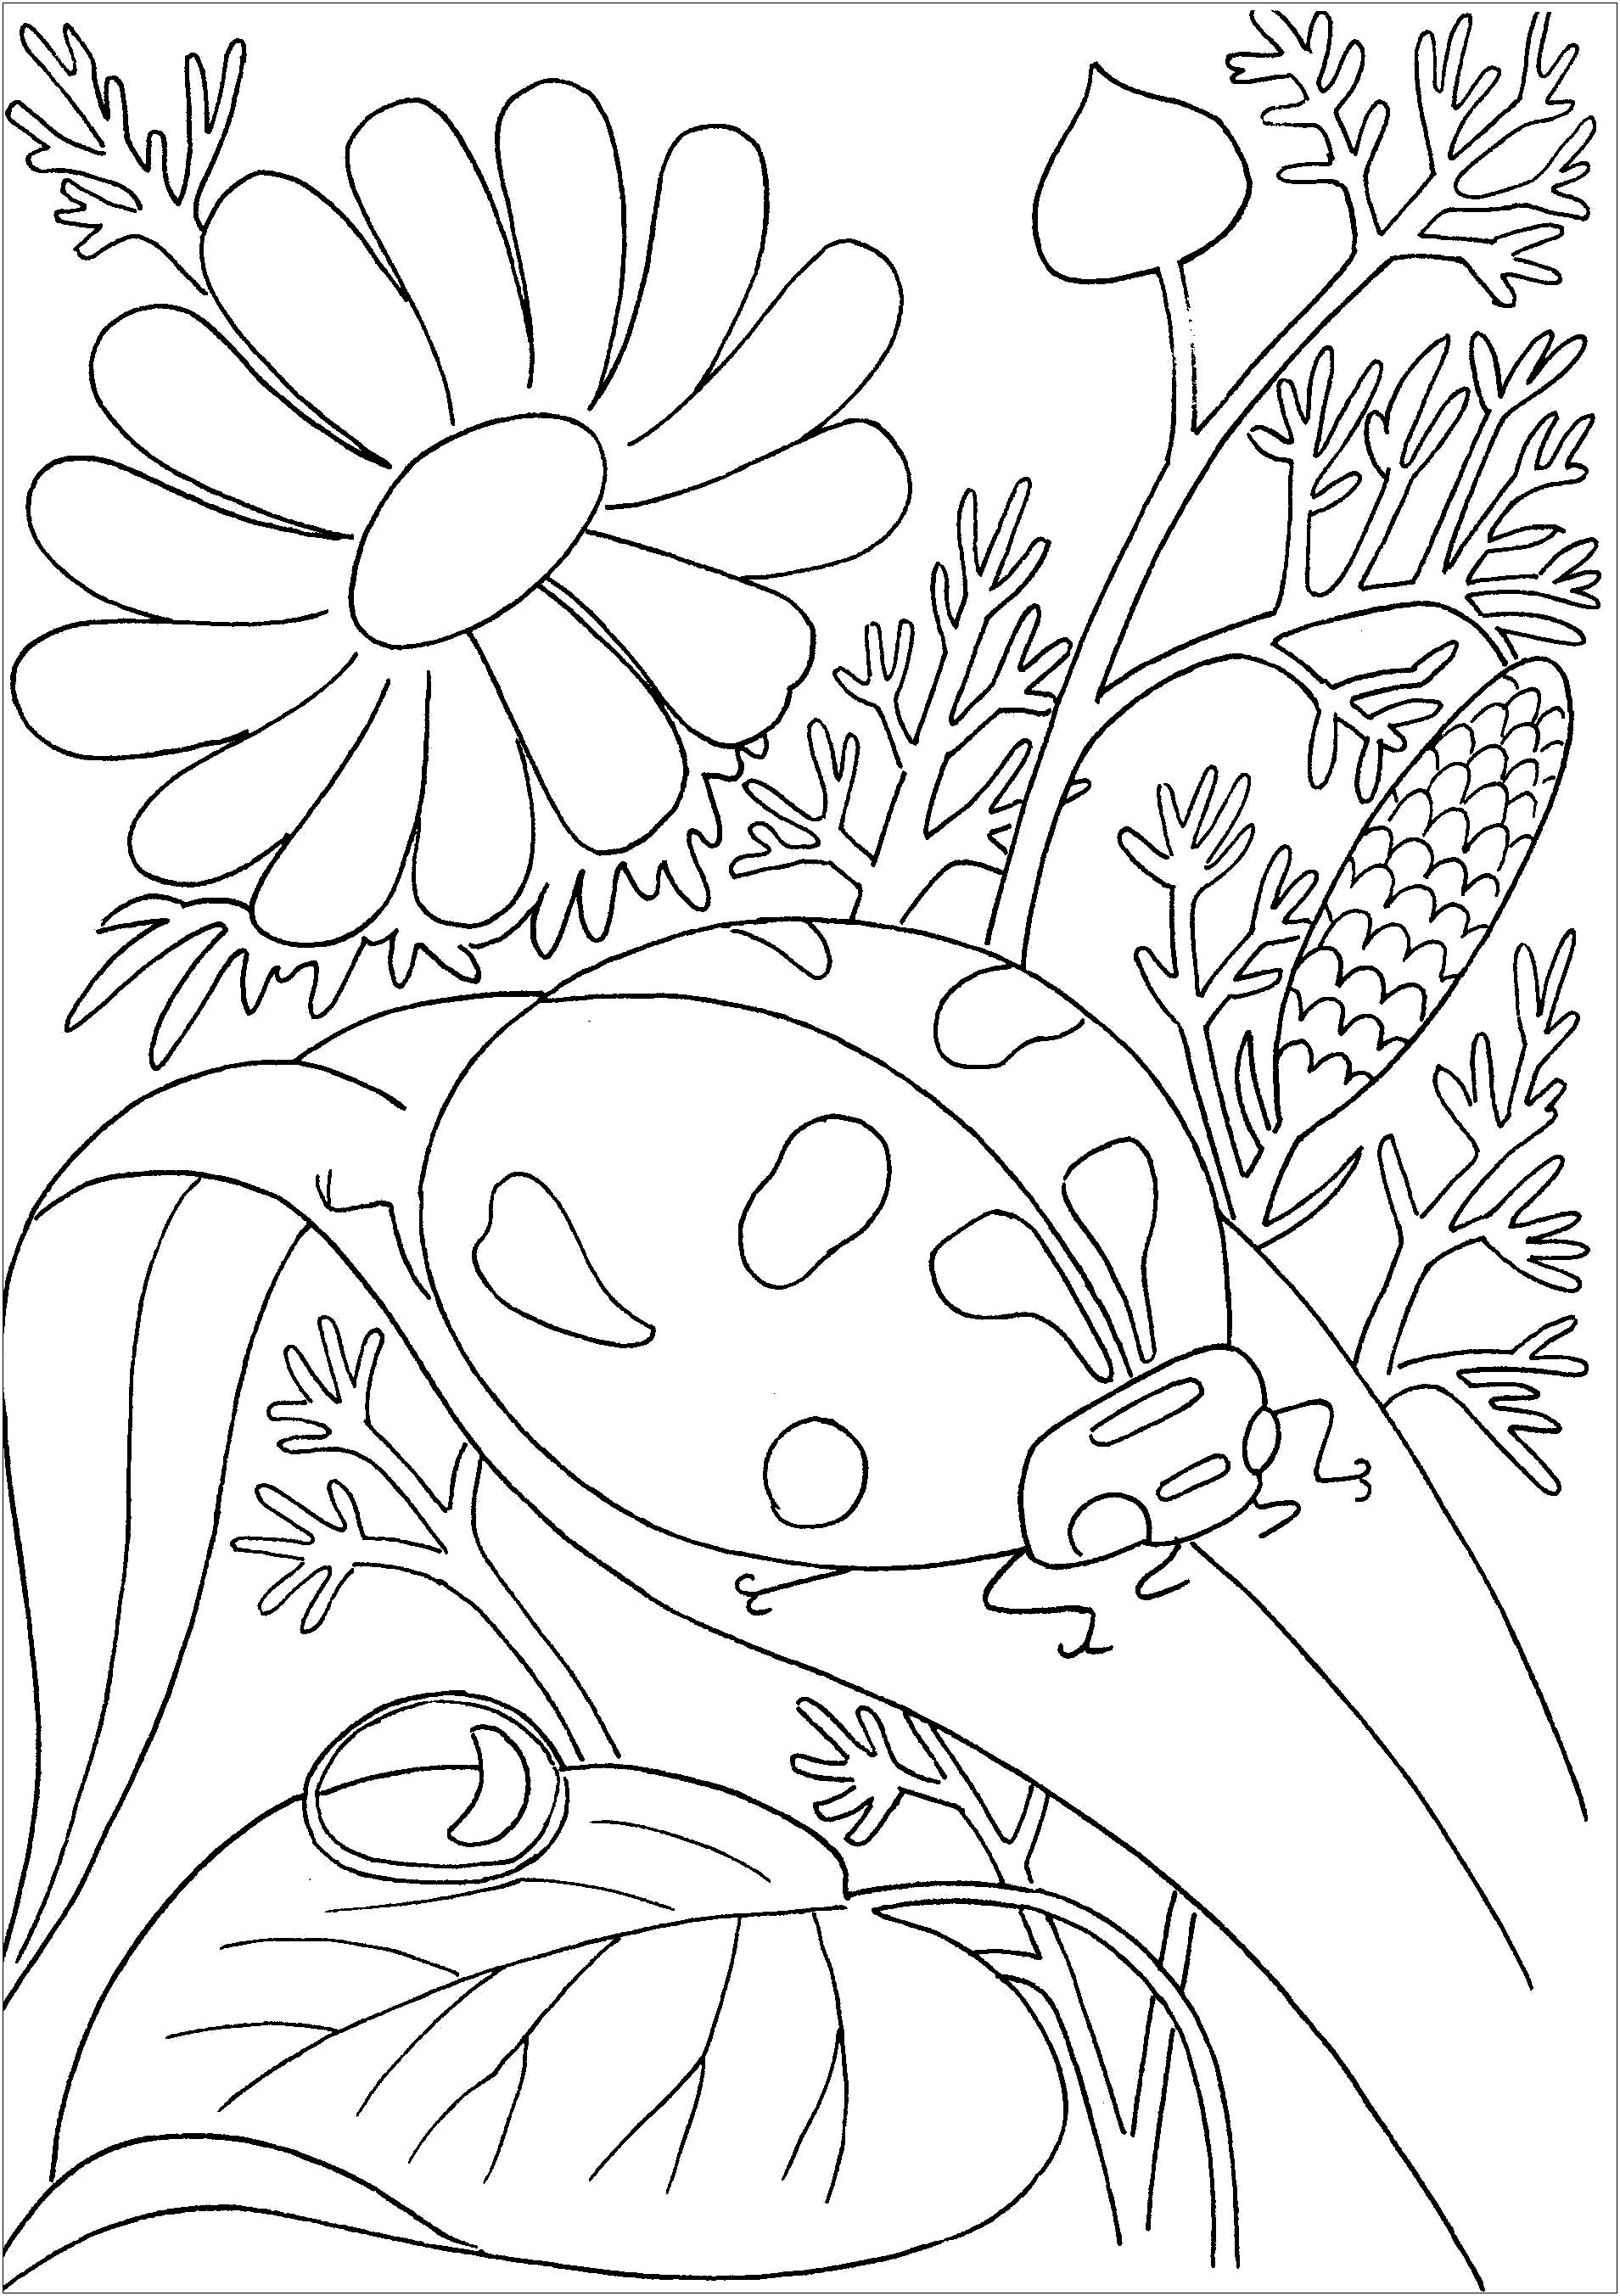 coloring pages bugs insects for children insects kids coloring pages bugs pages coloring